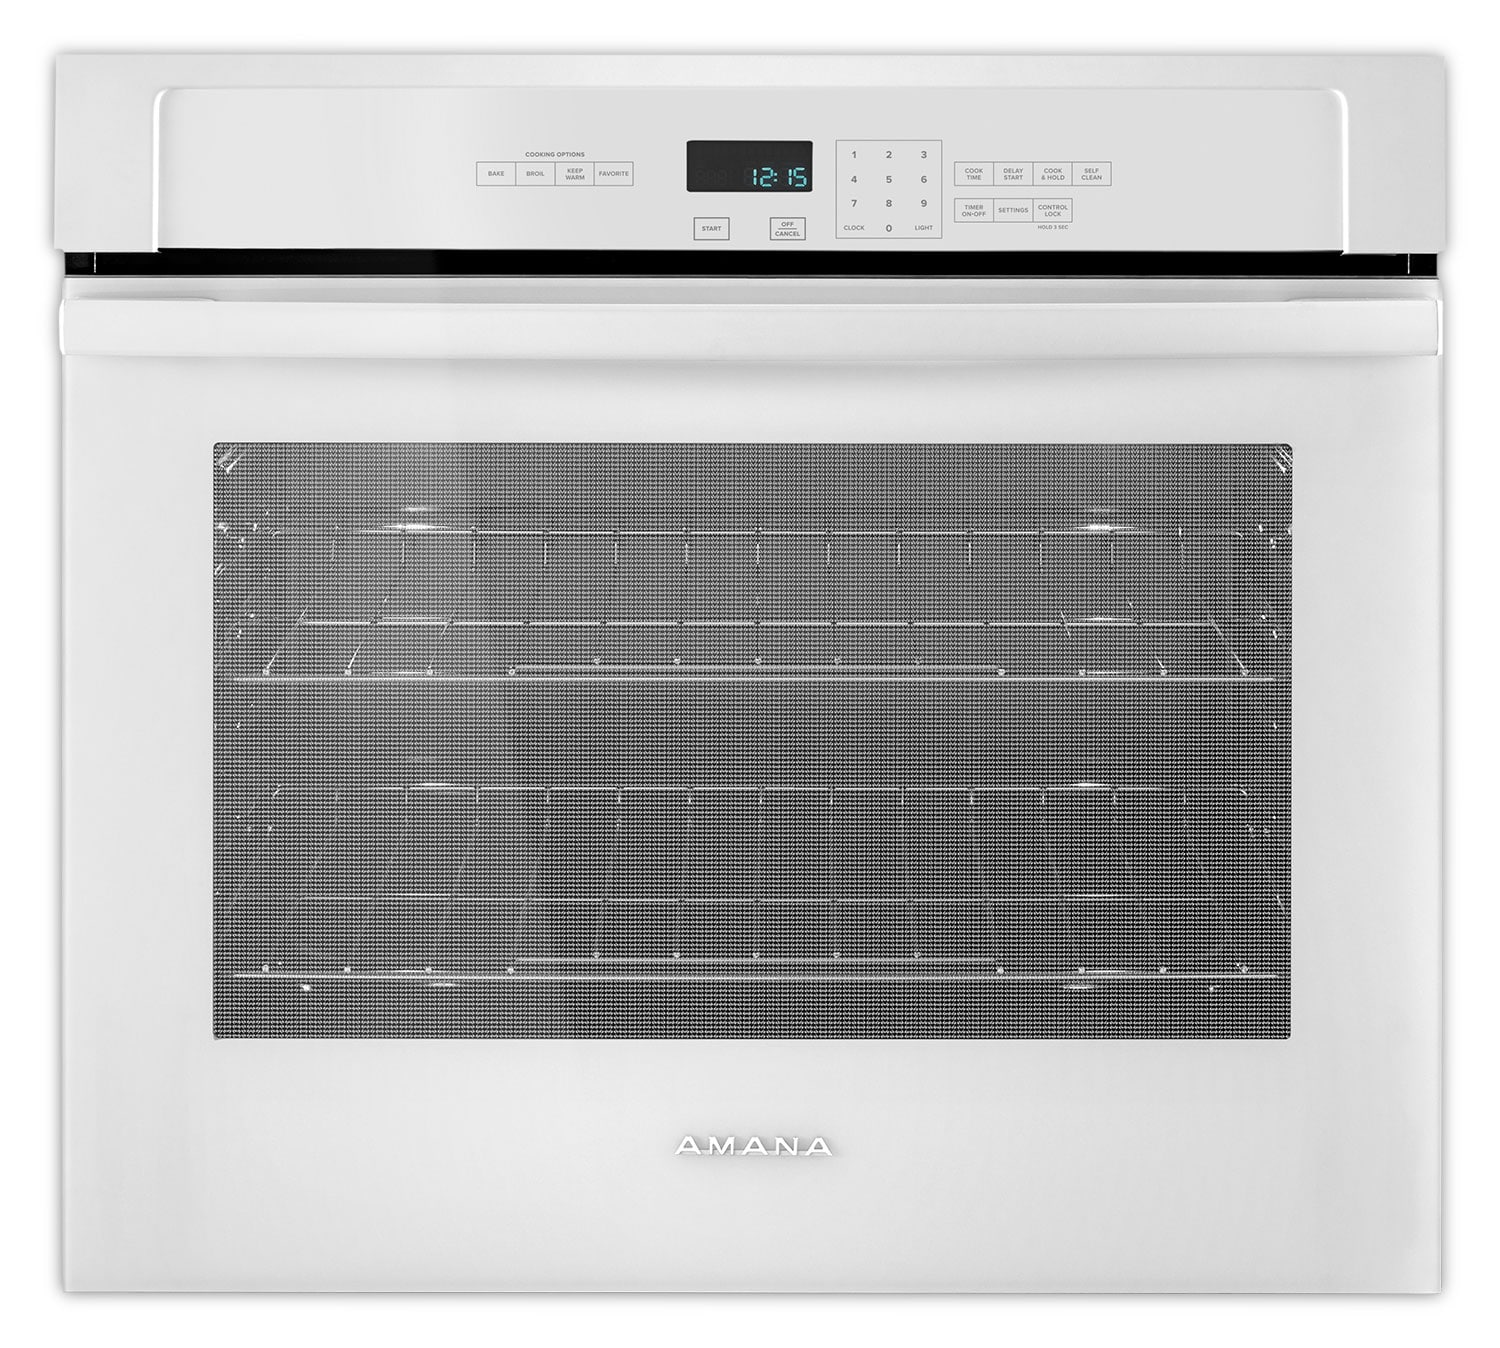 Amana White Electric Wall Oven (5.0 Cu. Ft.) - AWO6313SFW